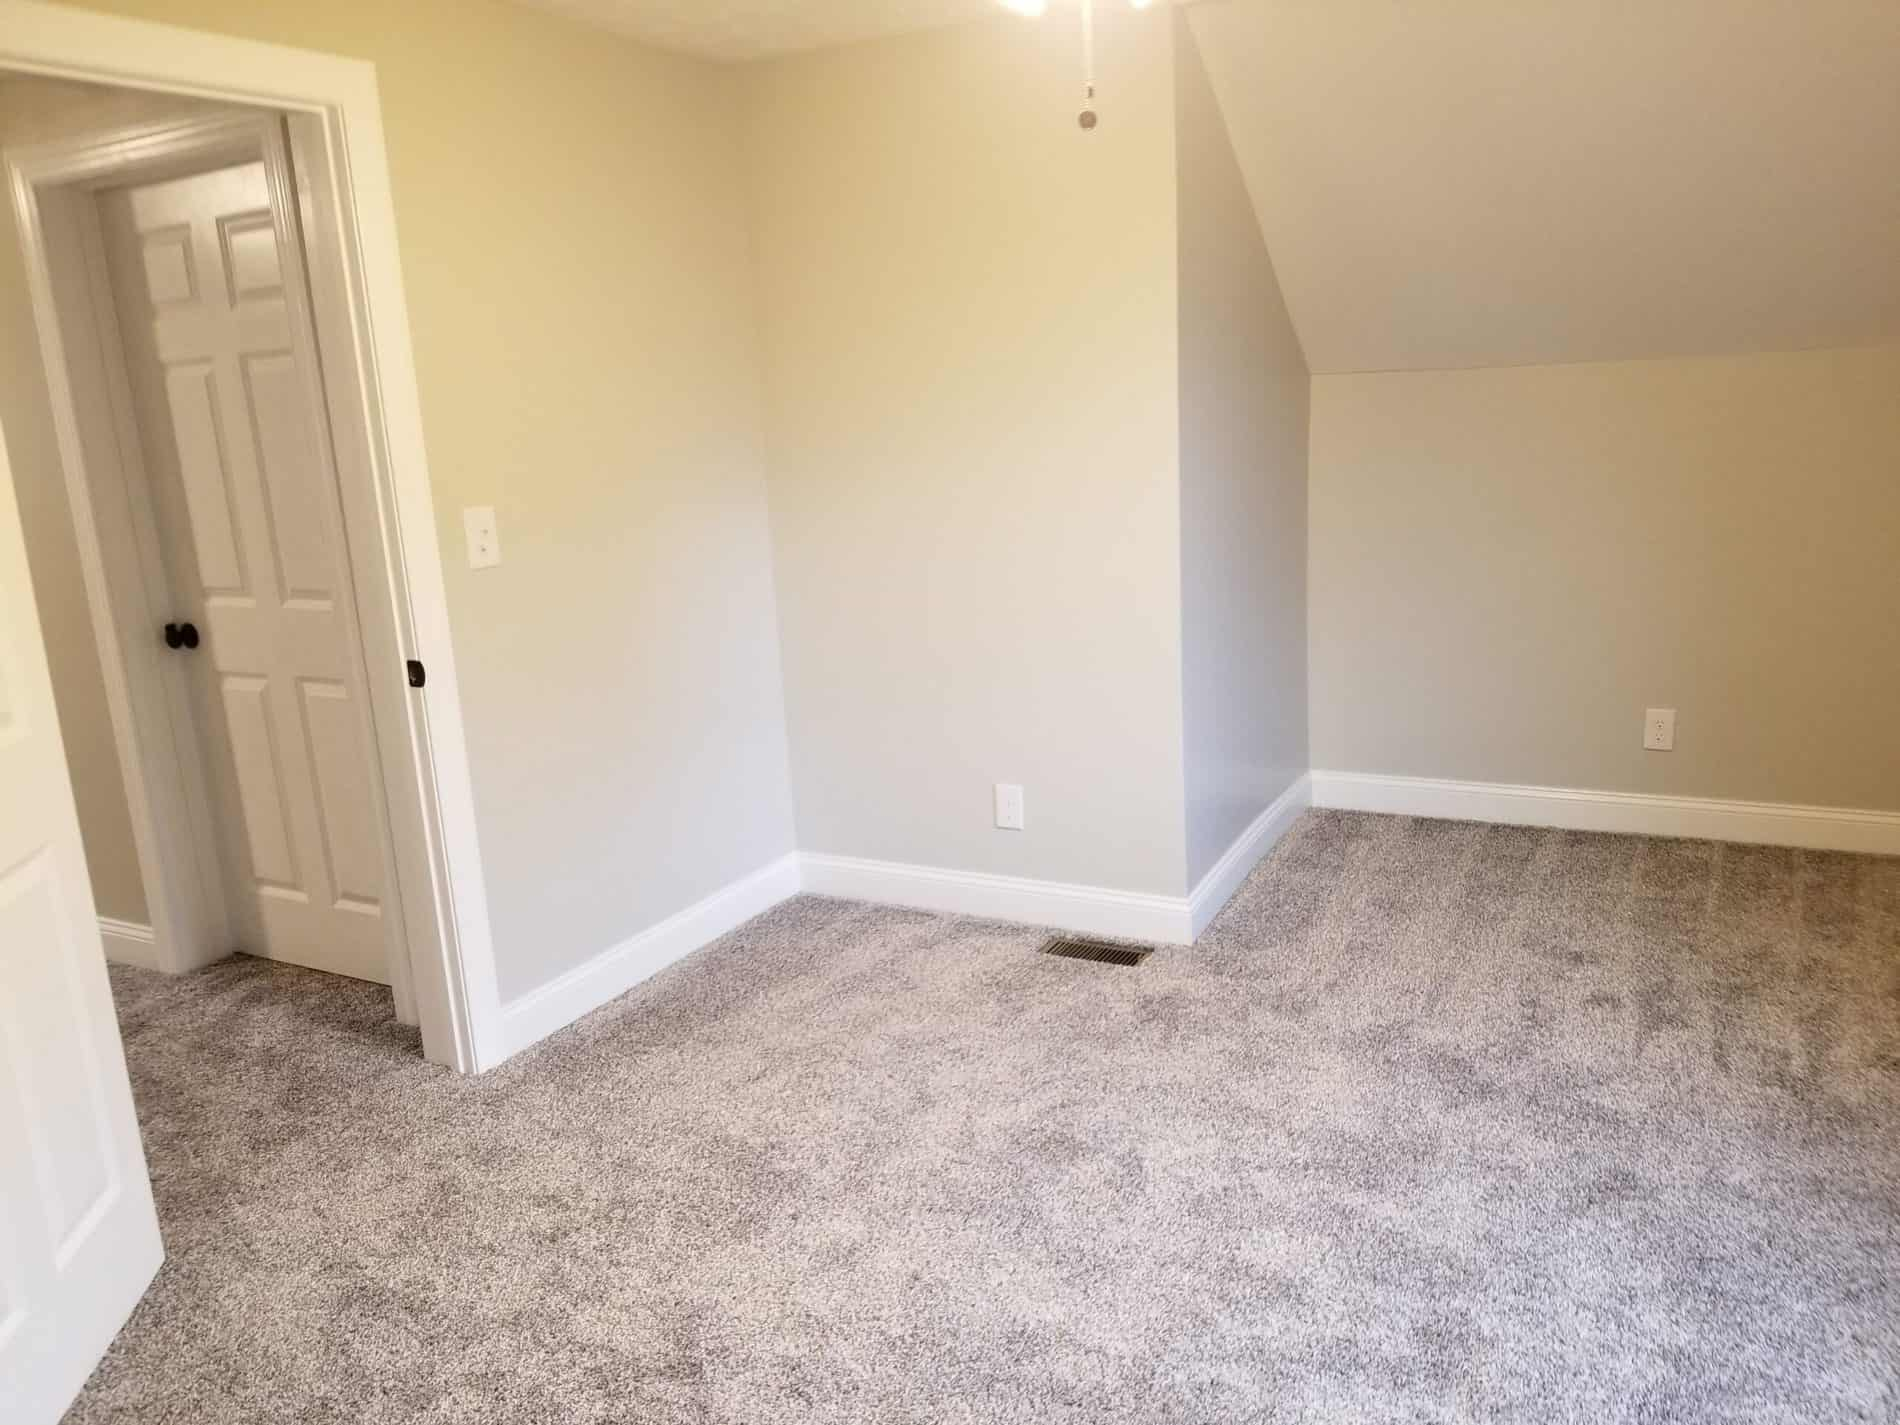 Home Remodel with second bedroom